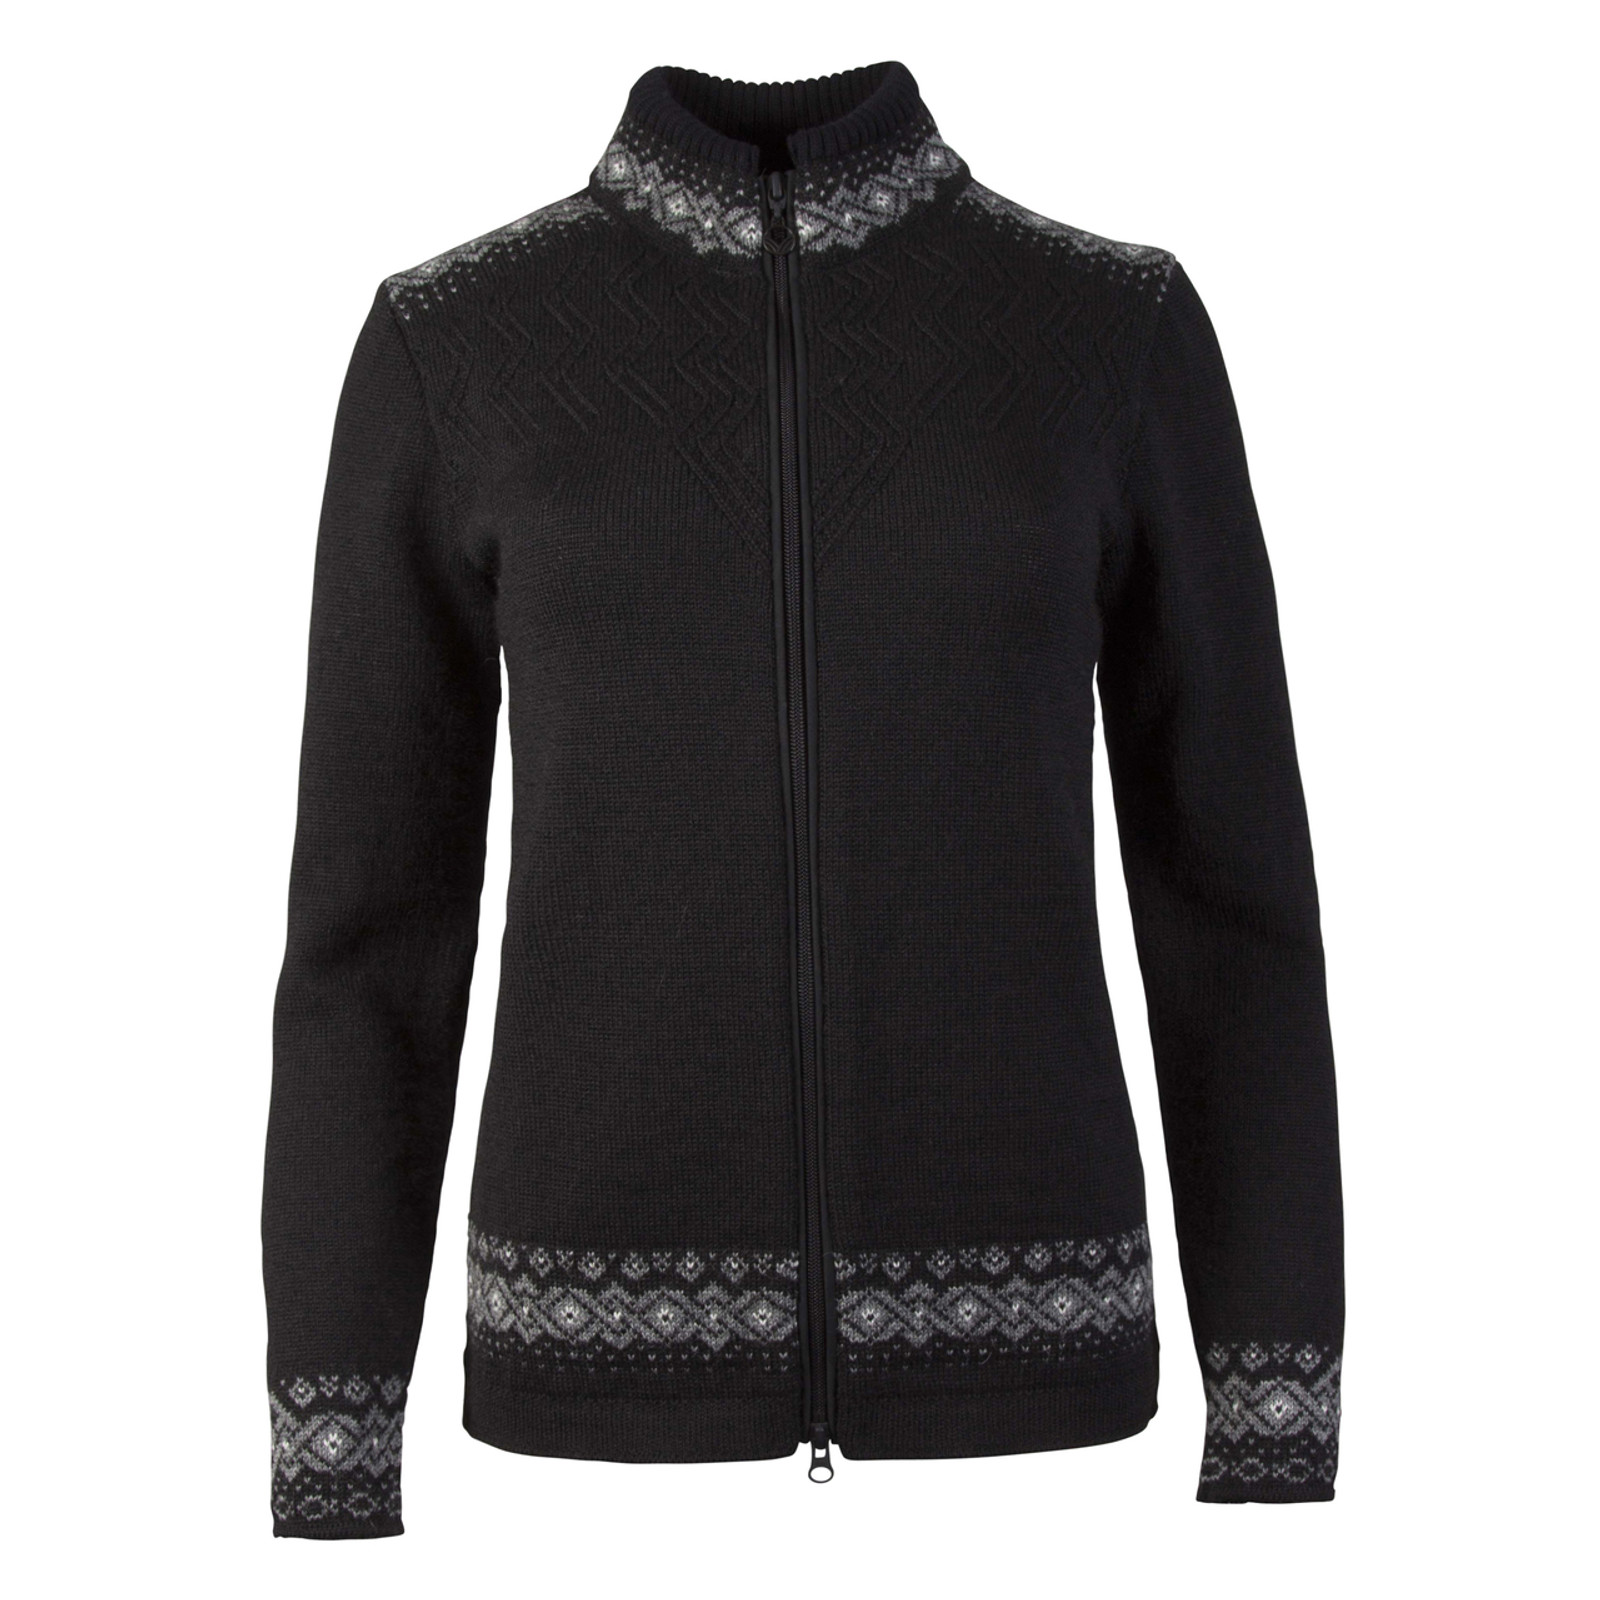 Dale of Norway Bergen  cardigan, ladies, Black/Smoke/Off White, 83181-F, on sale at The Nordic Shop